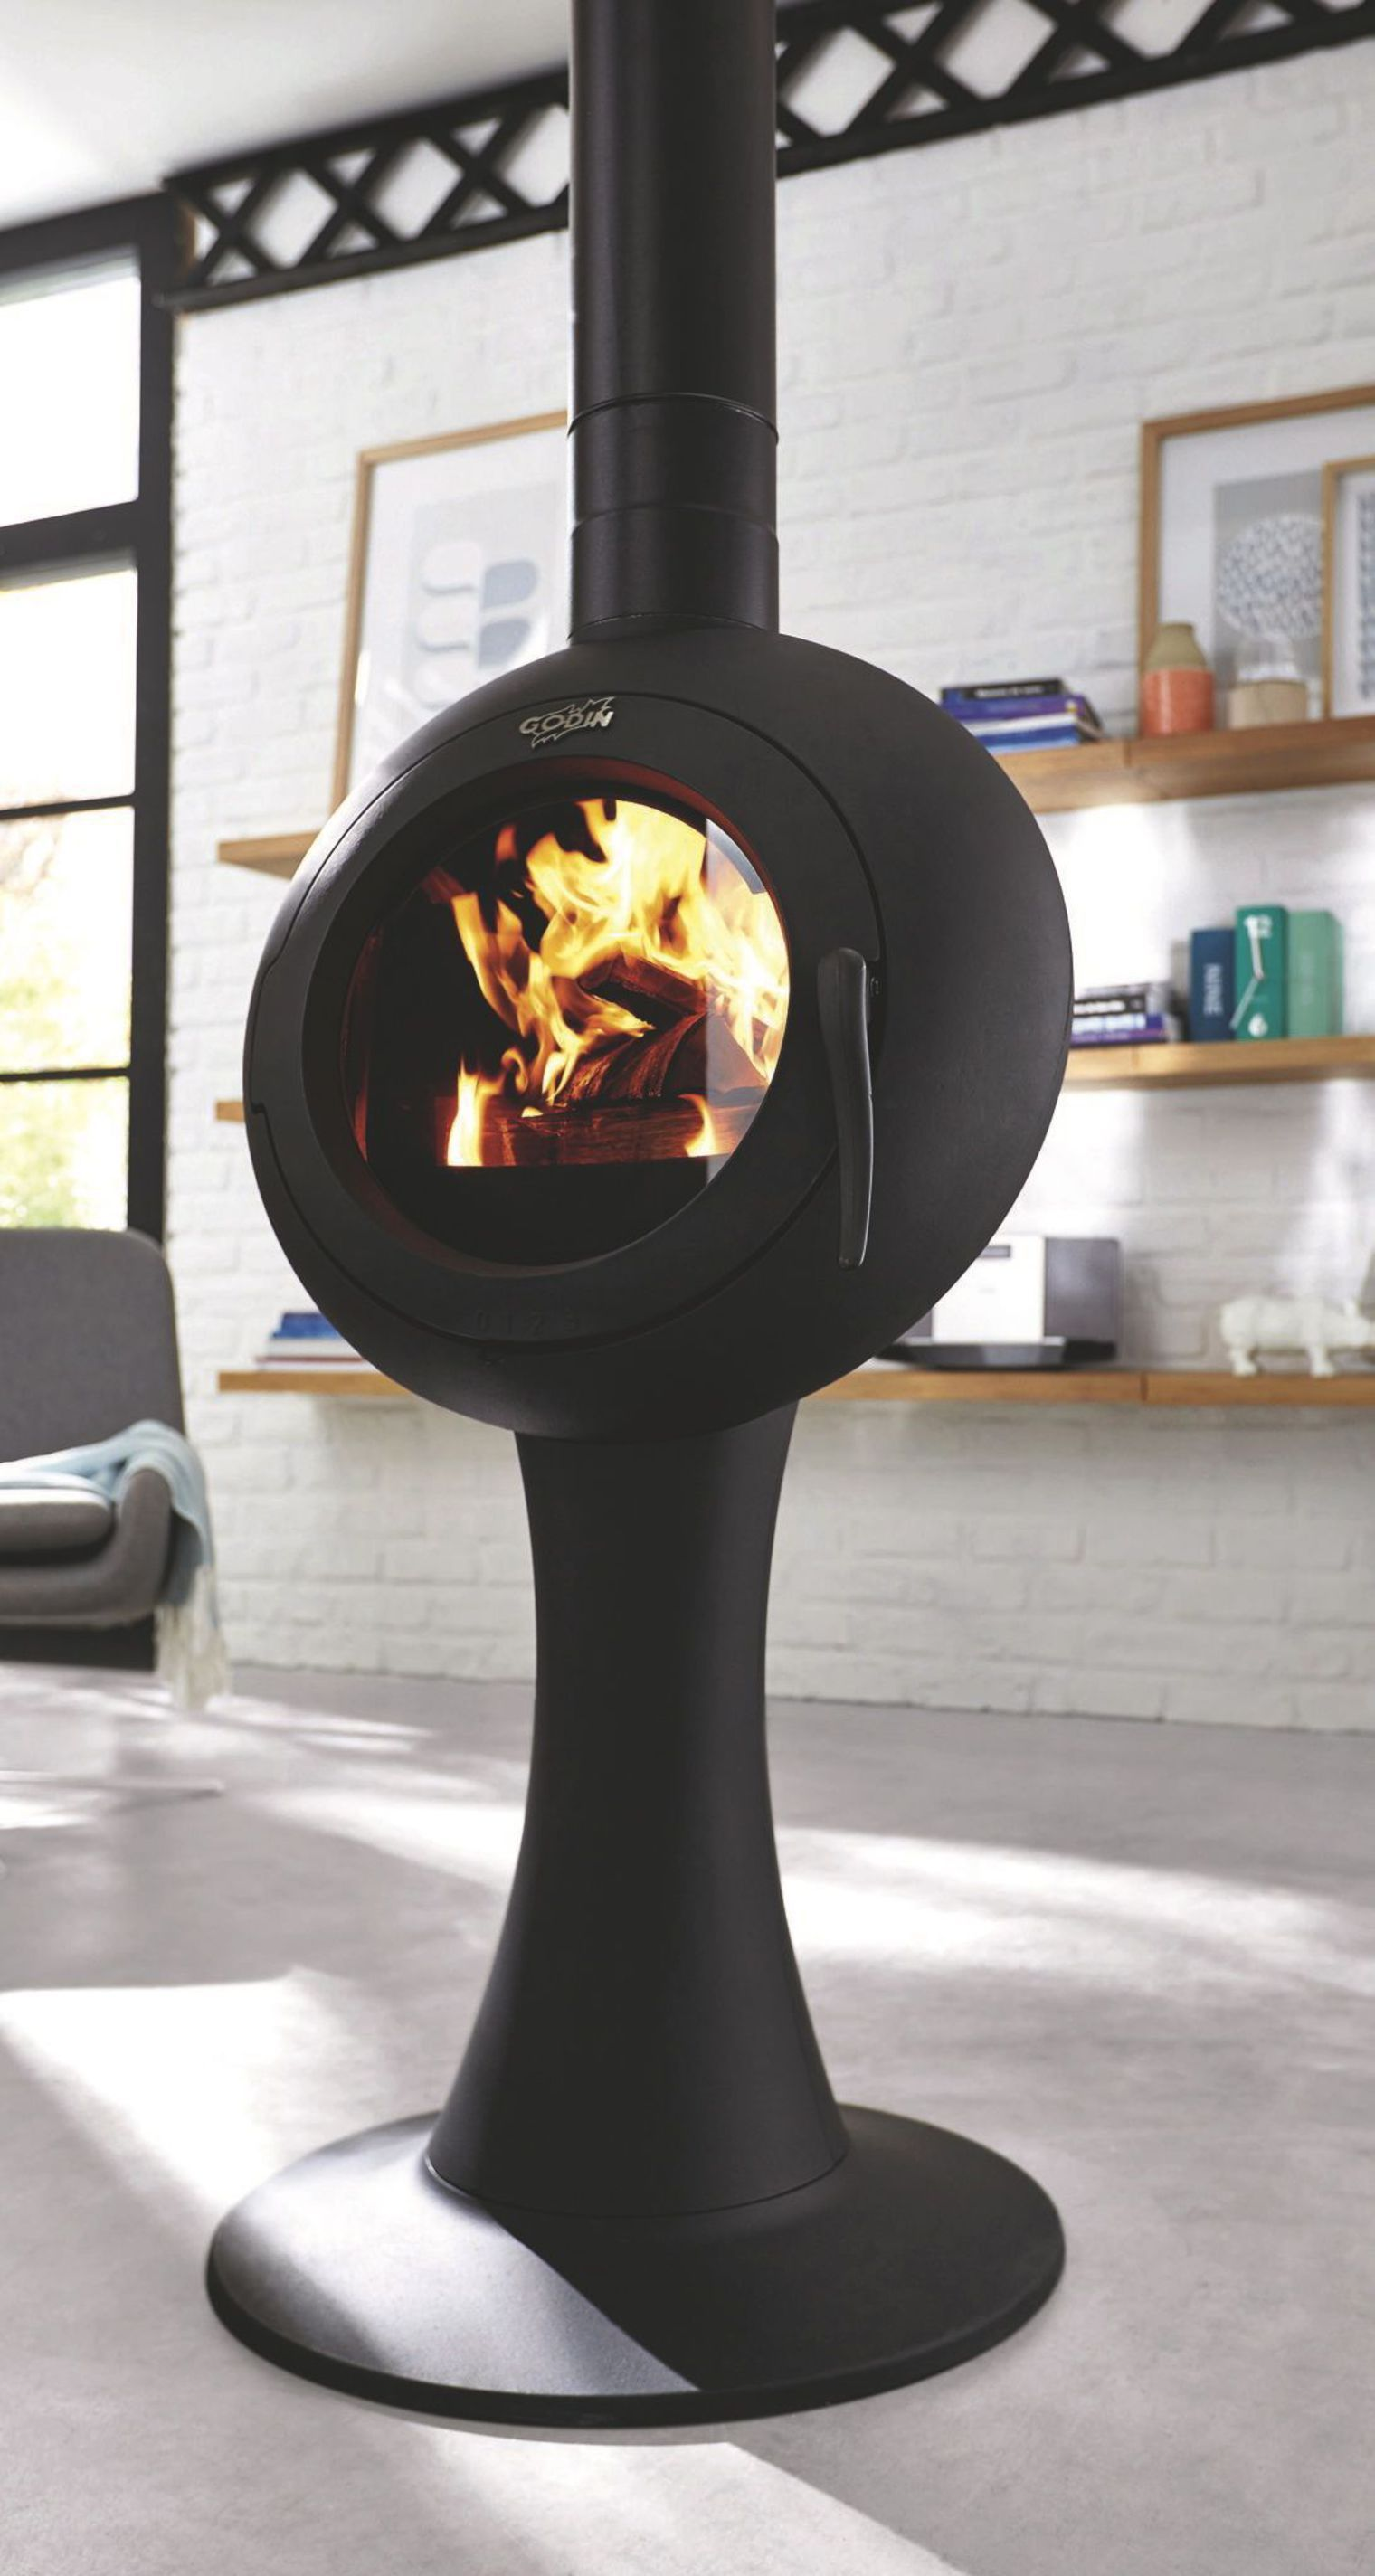 Pin By Phil Deaville On Fireplaces Pinterest Stove